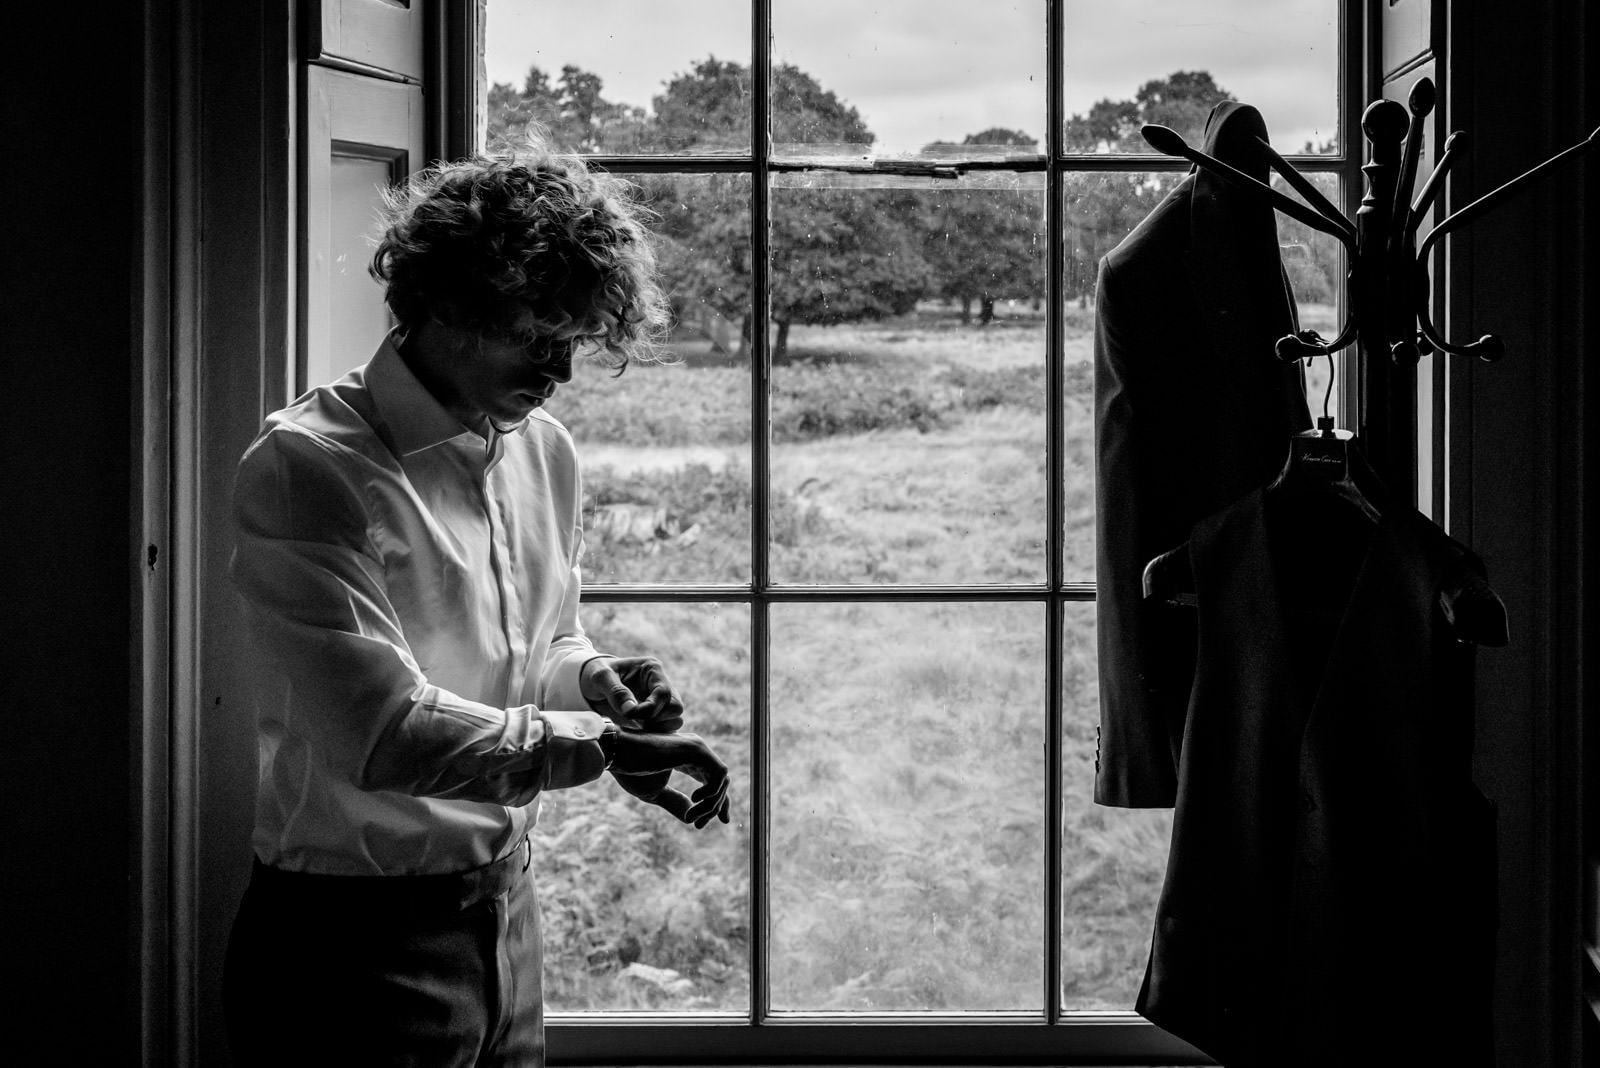 Groom getting ready at hampton court house in front of the window over looking Bushy park